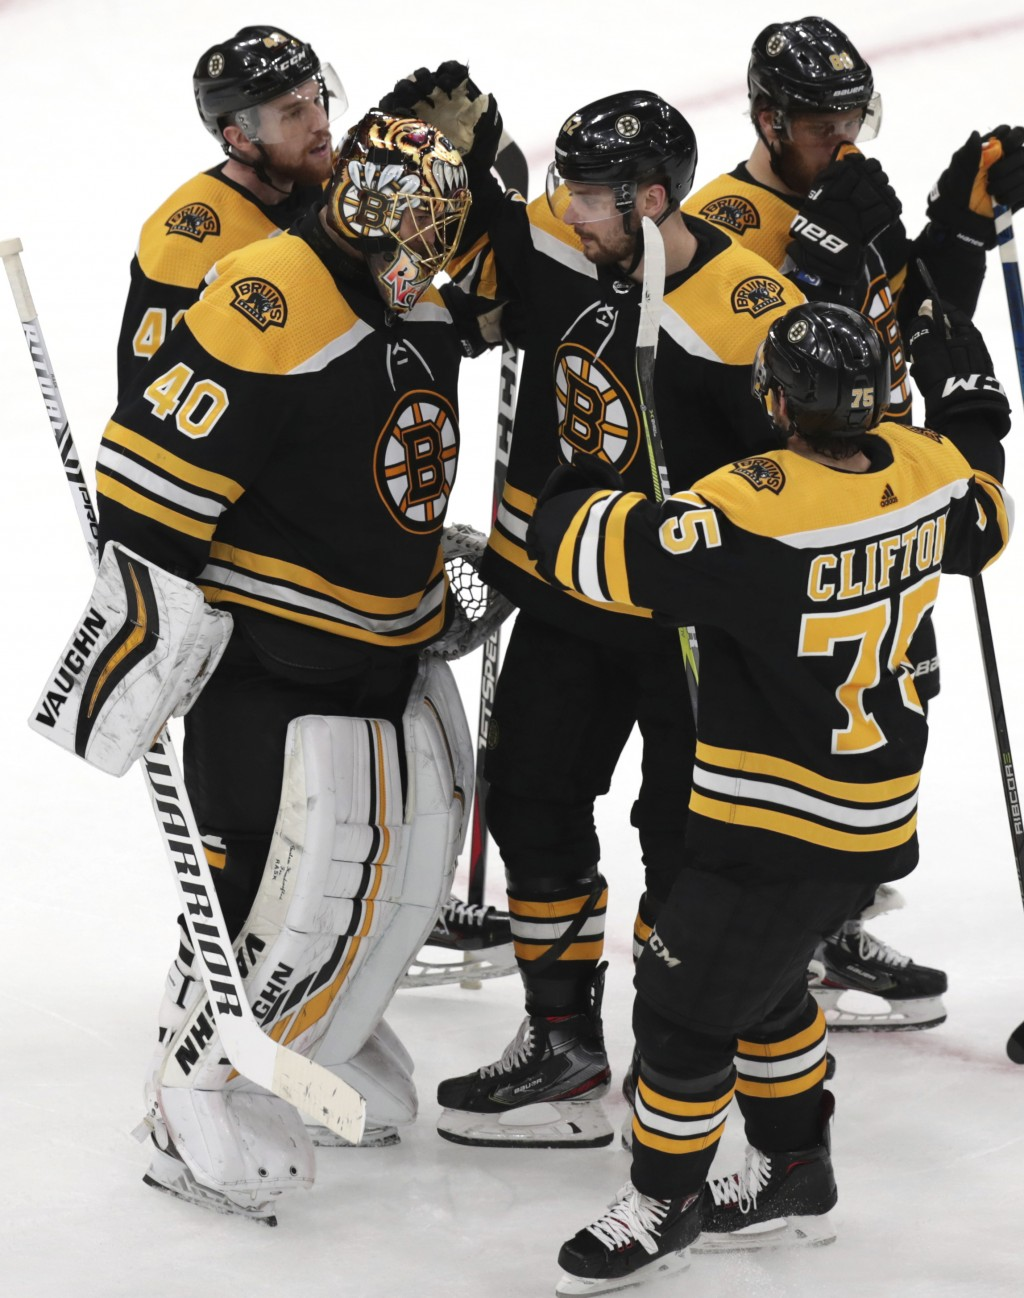 Boston Bruins goaltender Tuukka Rask (40), of Finland, is congratulated after the team's 5-2 win over the Carolina Hurricanes in Game 1 of the NHL hoc